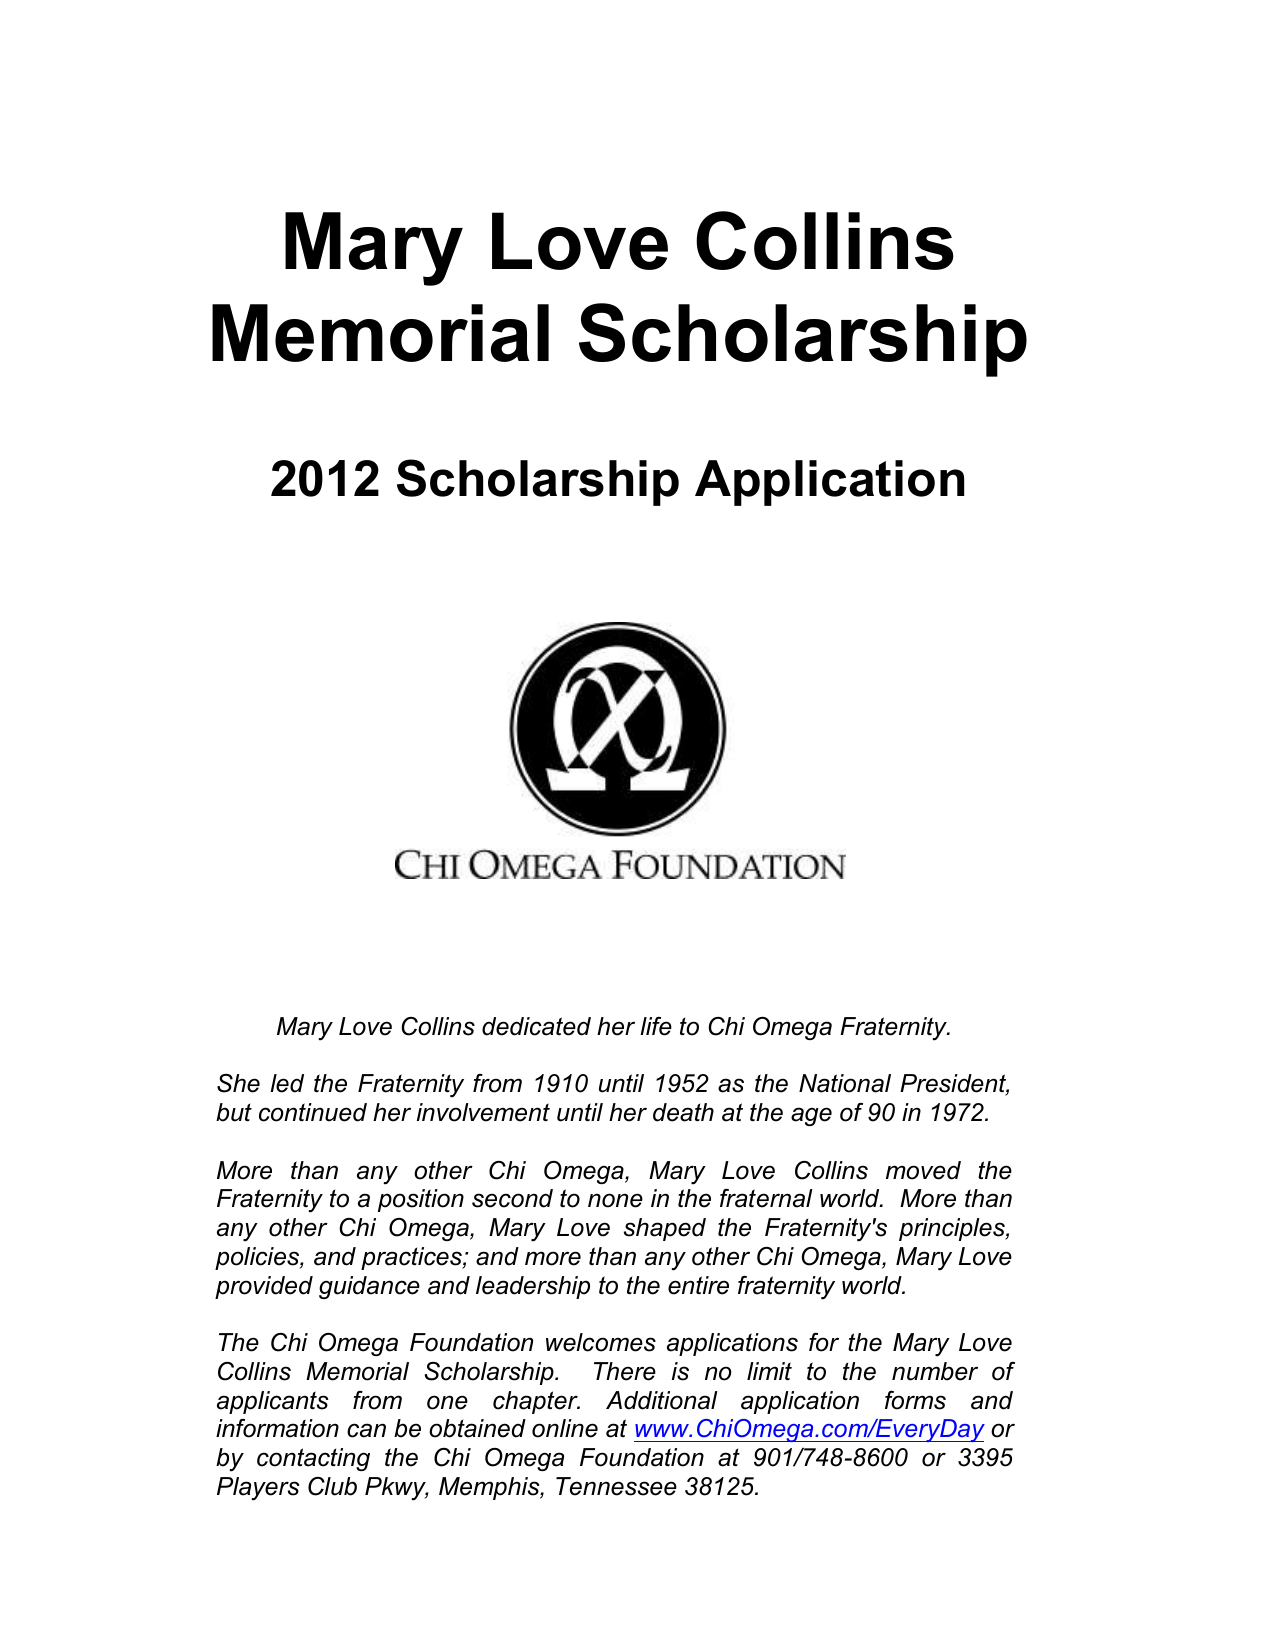 Mary Love Collins Memorial Scholarship